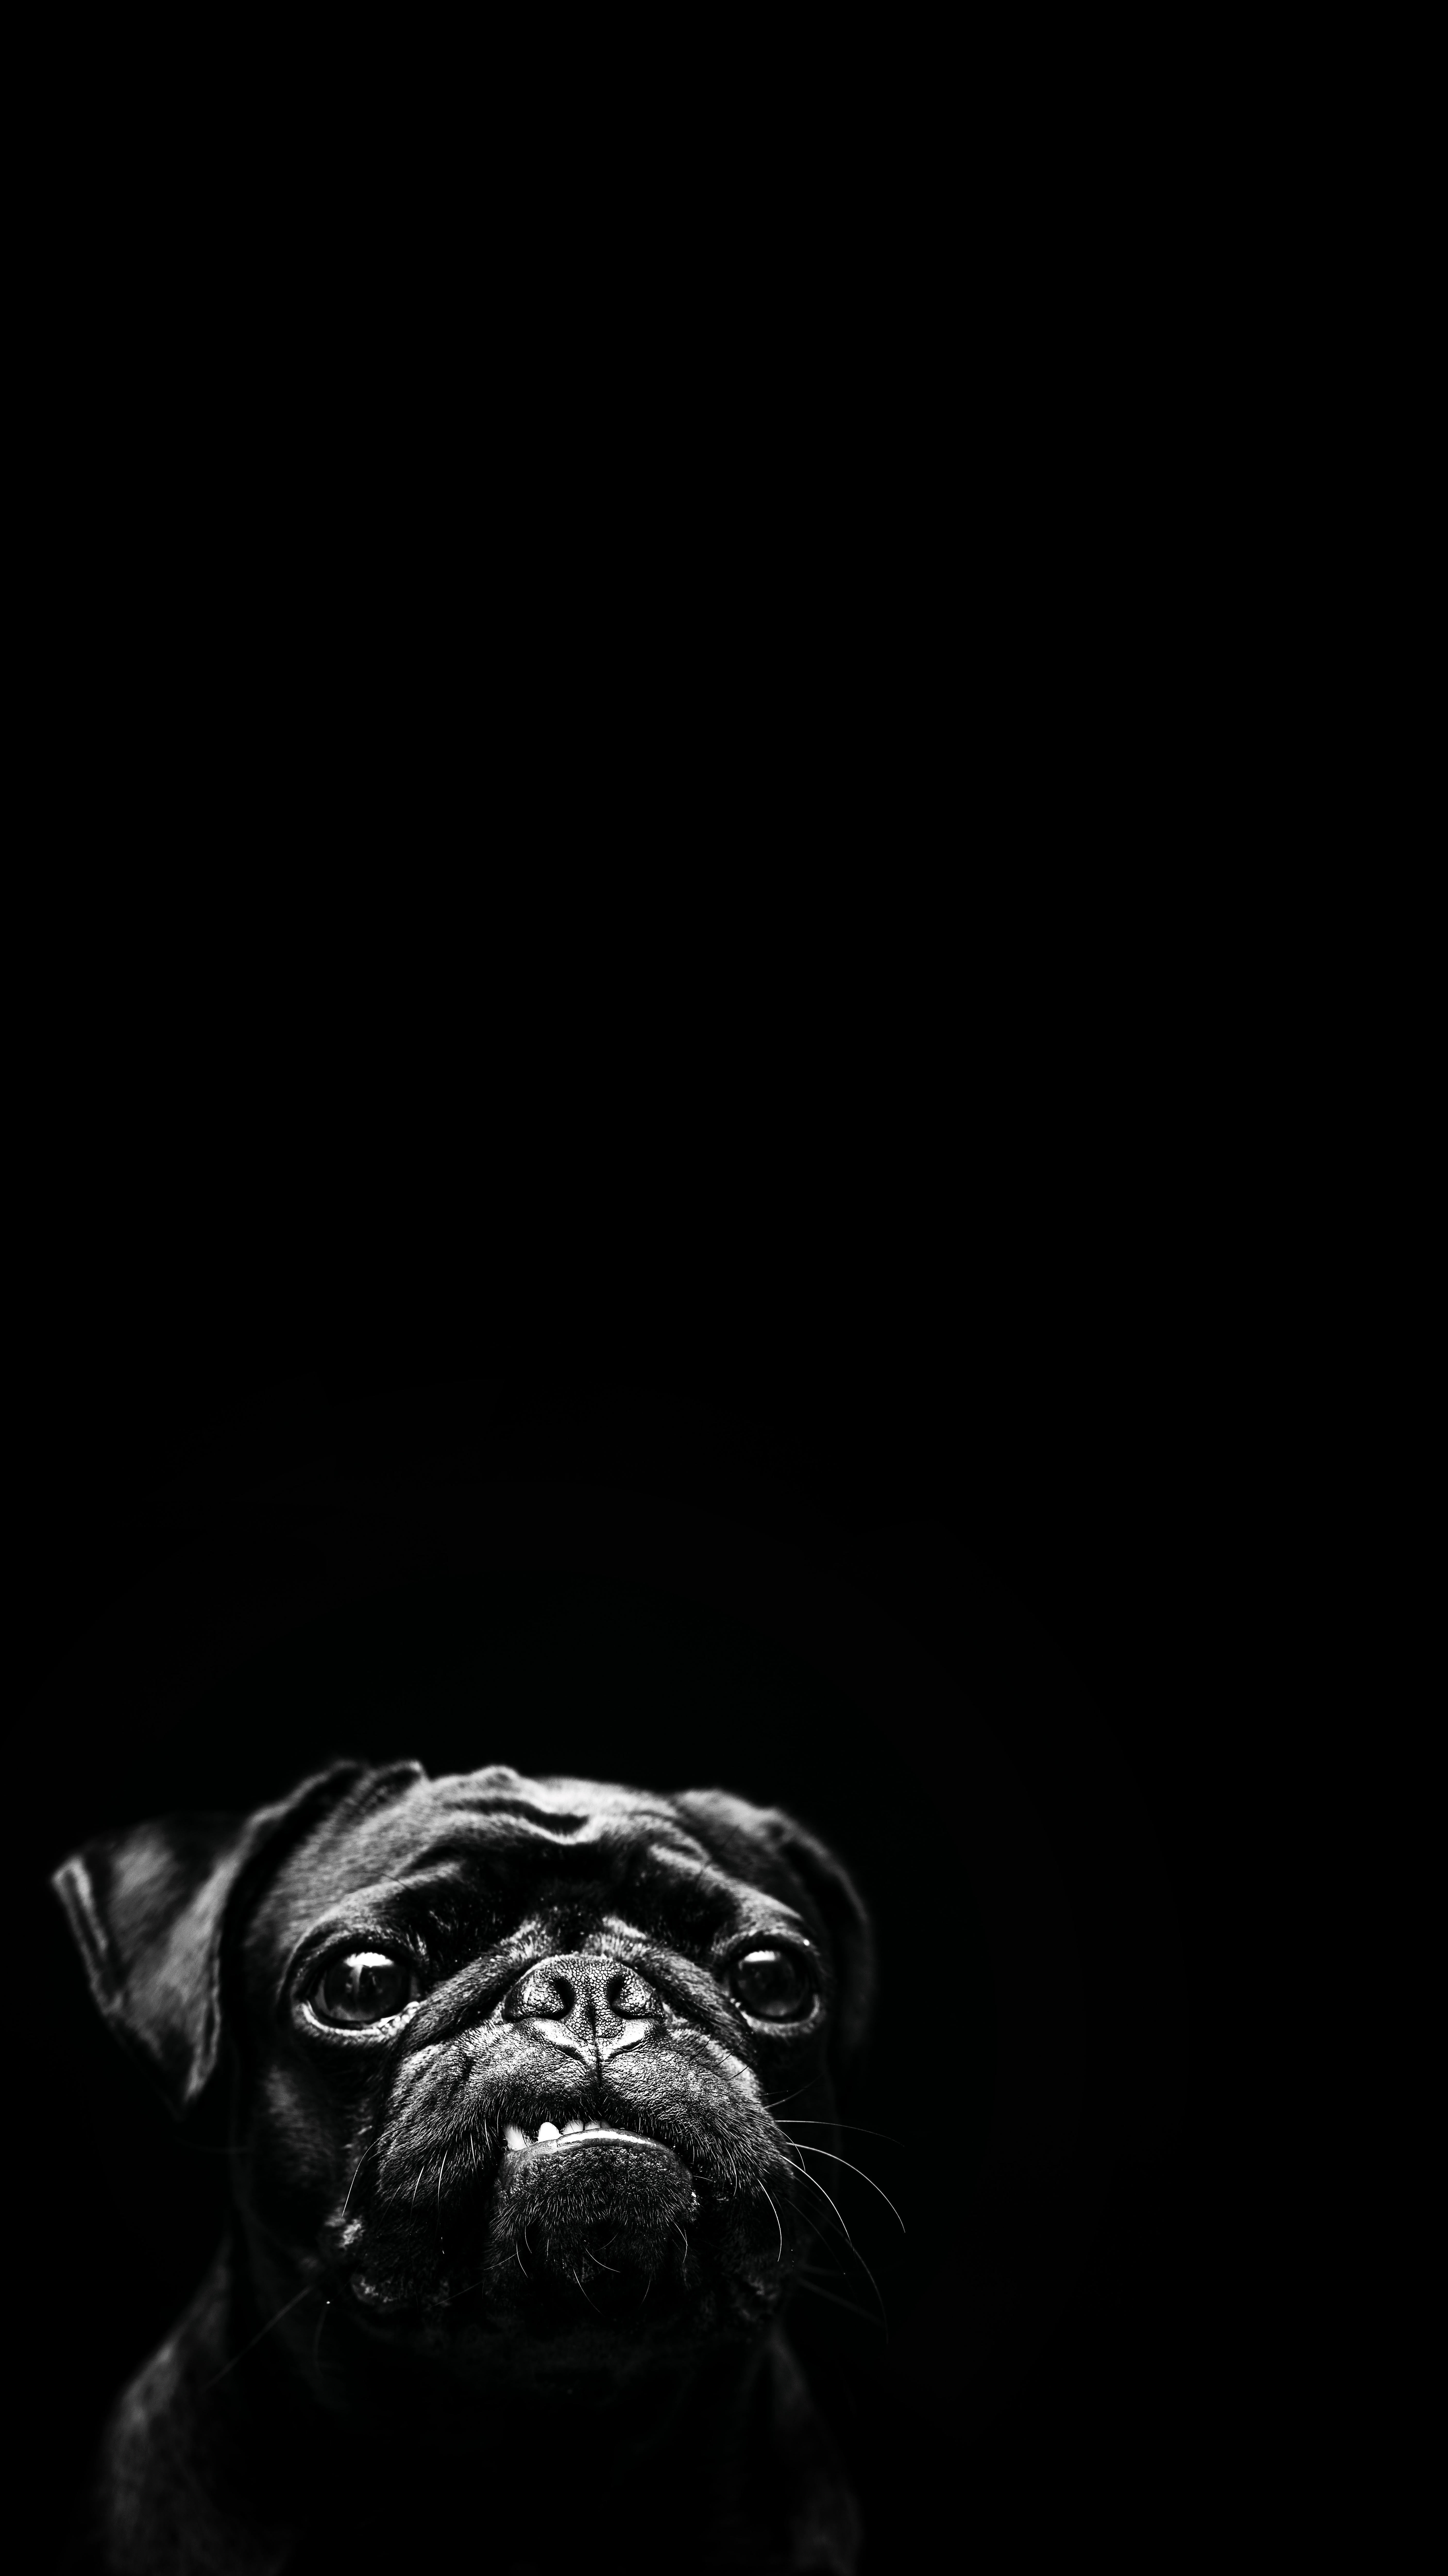 134189 download wallpaper Animals, Dog, Pug, Pet screensavers and pictures for free